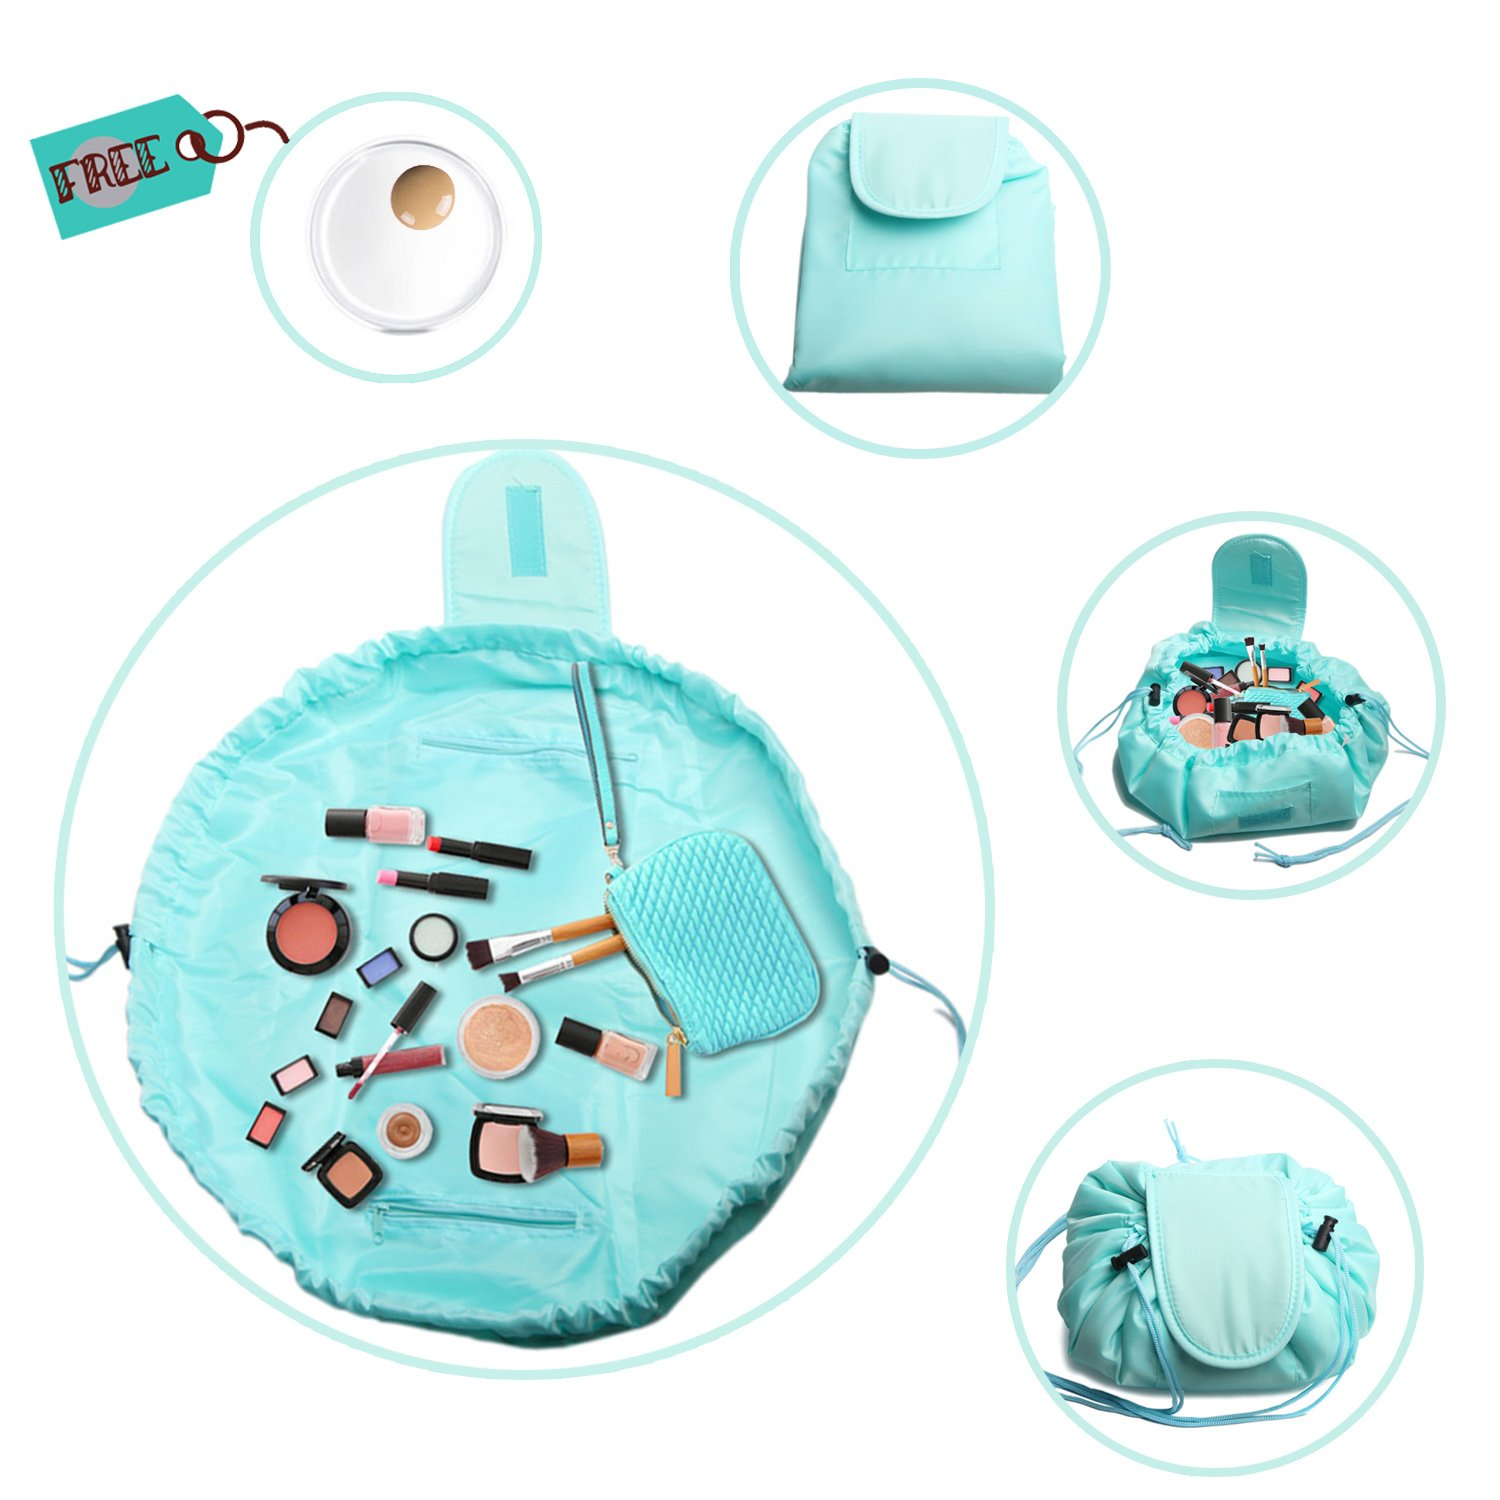 Quick Pack Drawstring Magic Cosmetic Bag - Travel Toiletry Kit Organizer All-In-One Storage Pouch Silicone Makeup Blender